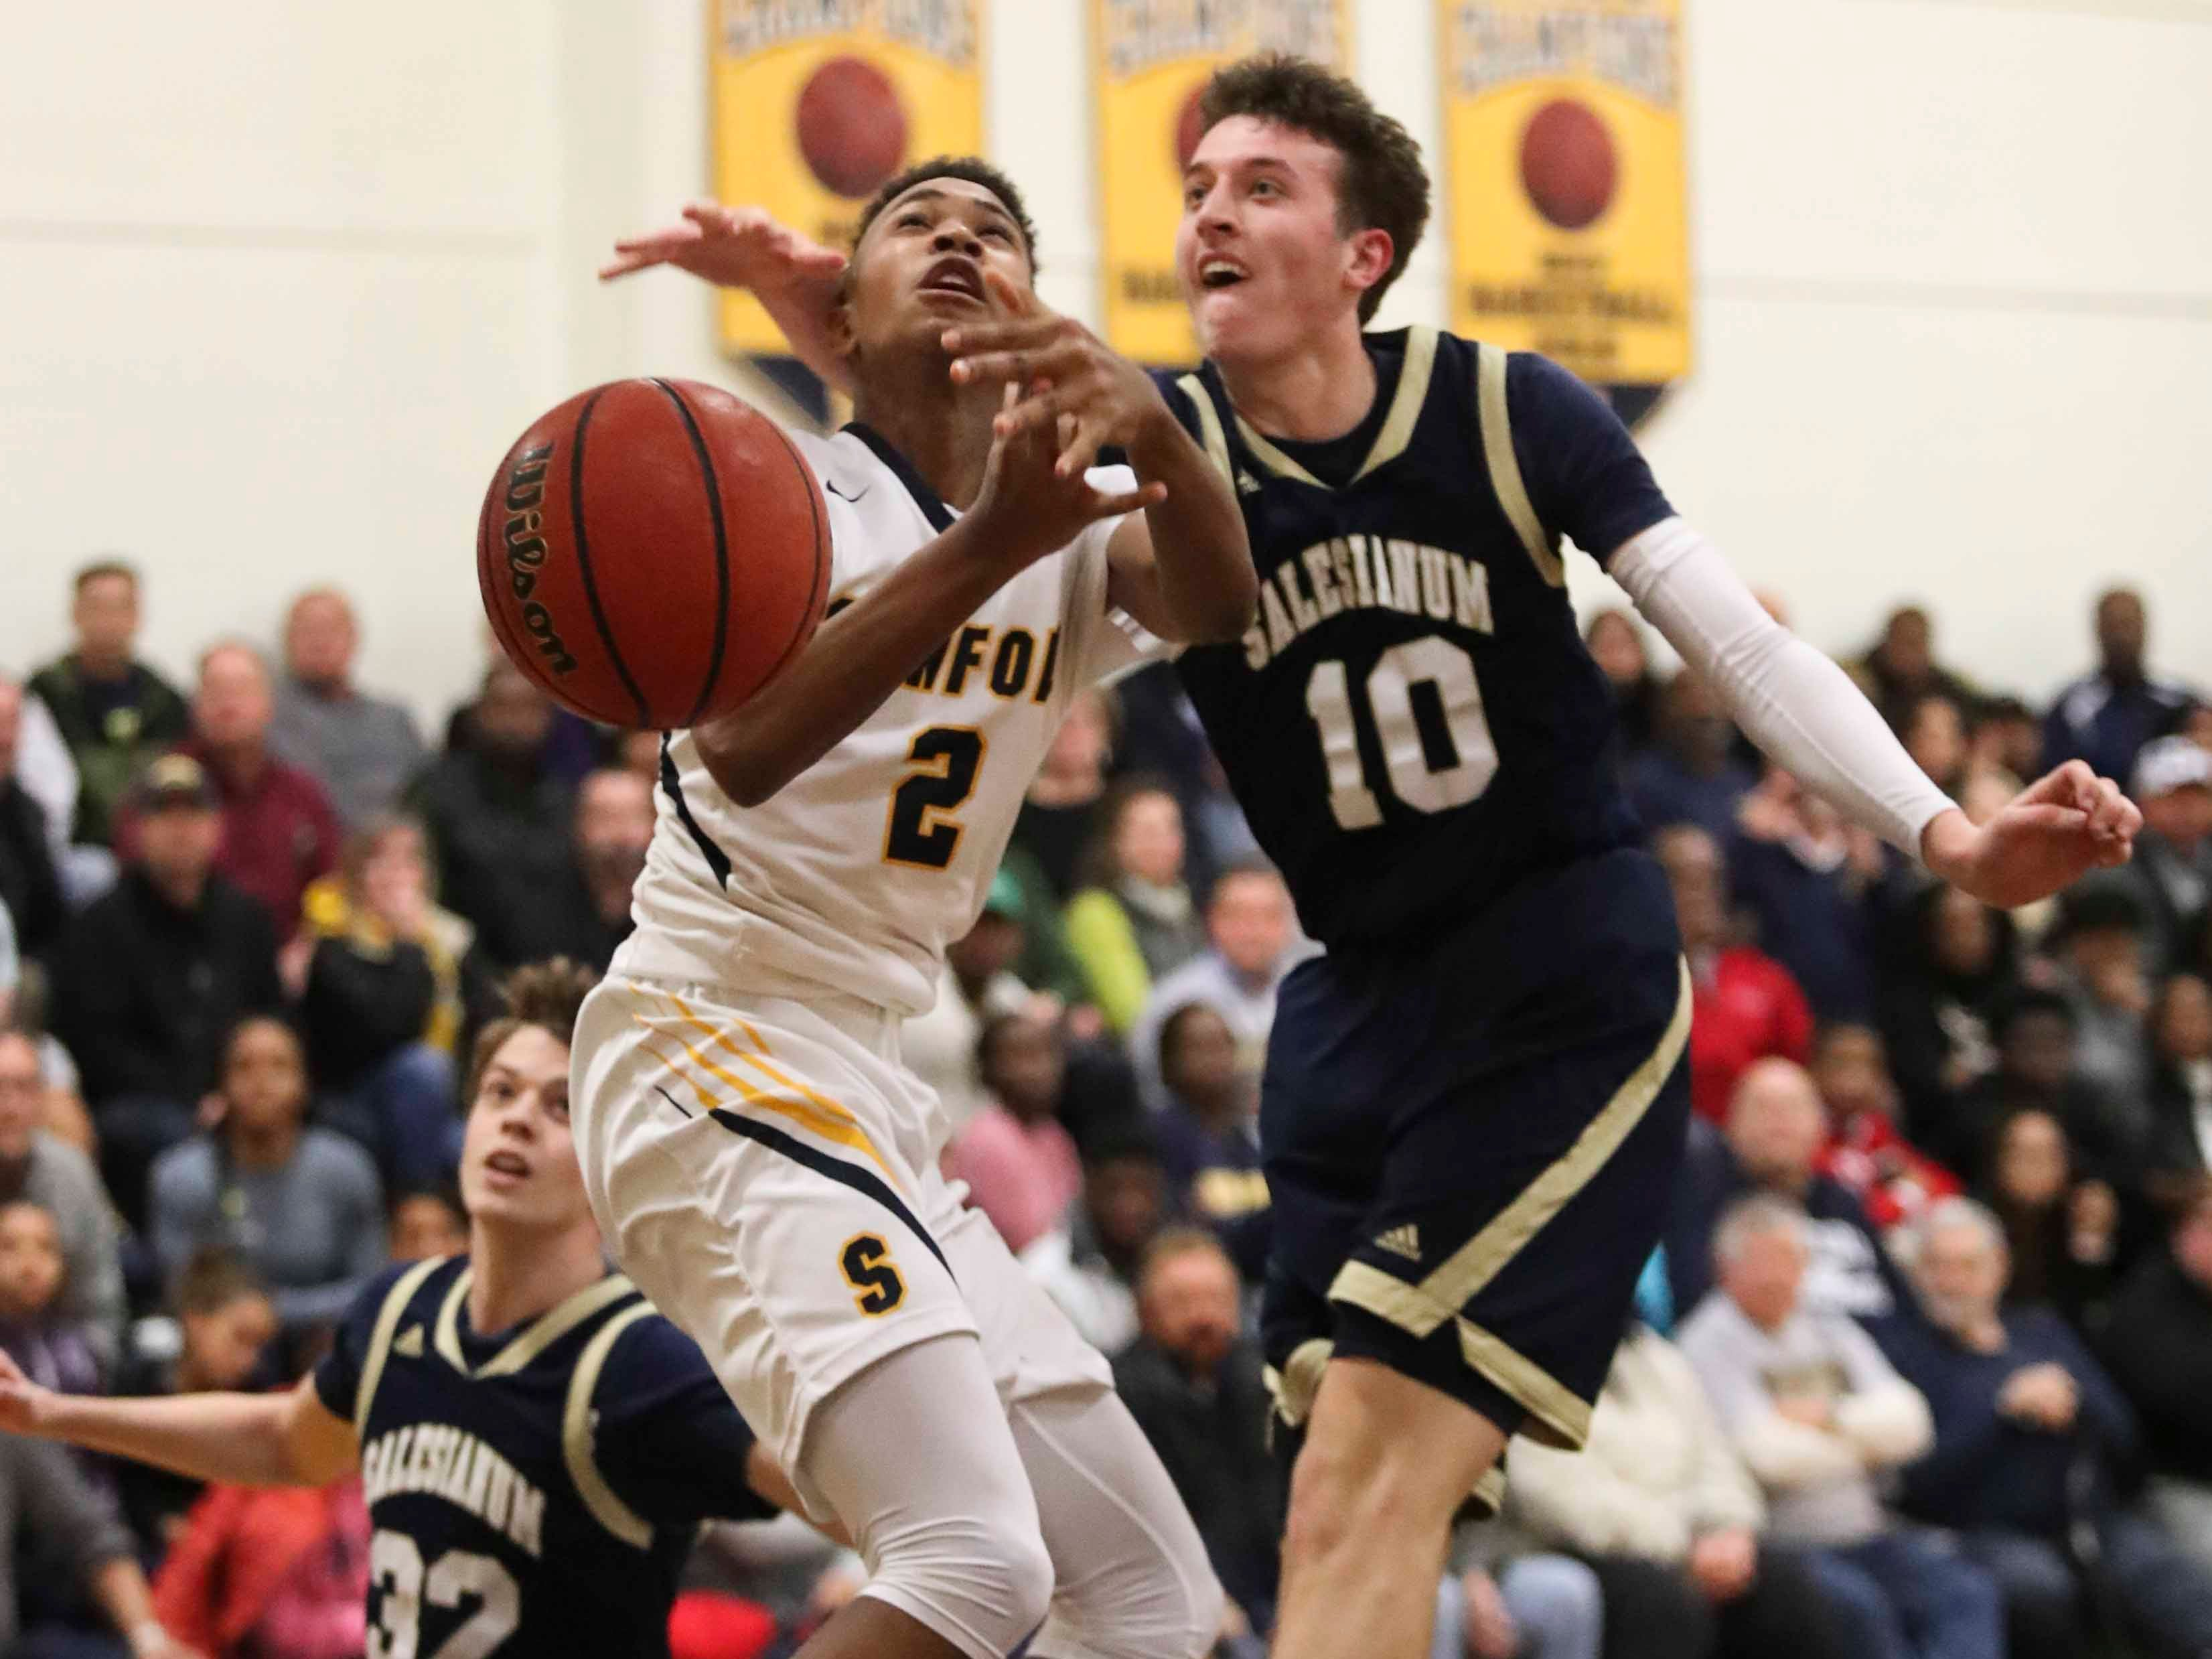 Sanford's Corey Perkins (left) is fouled by Salesianum's Jack Brown during the Warriors' 65-47 win at home Friday.